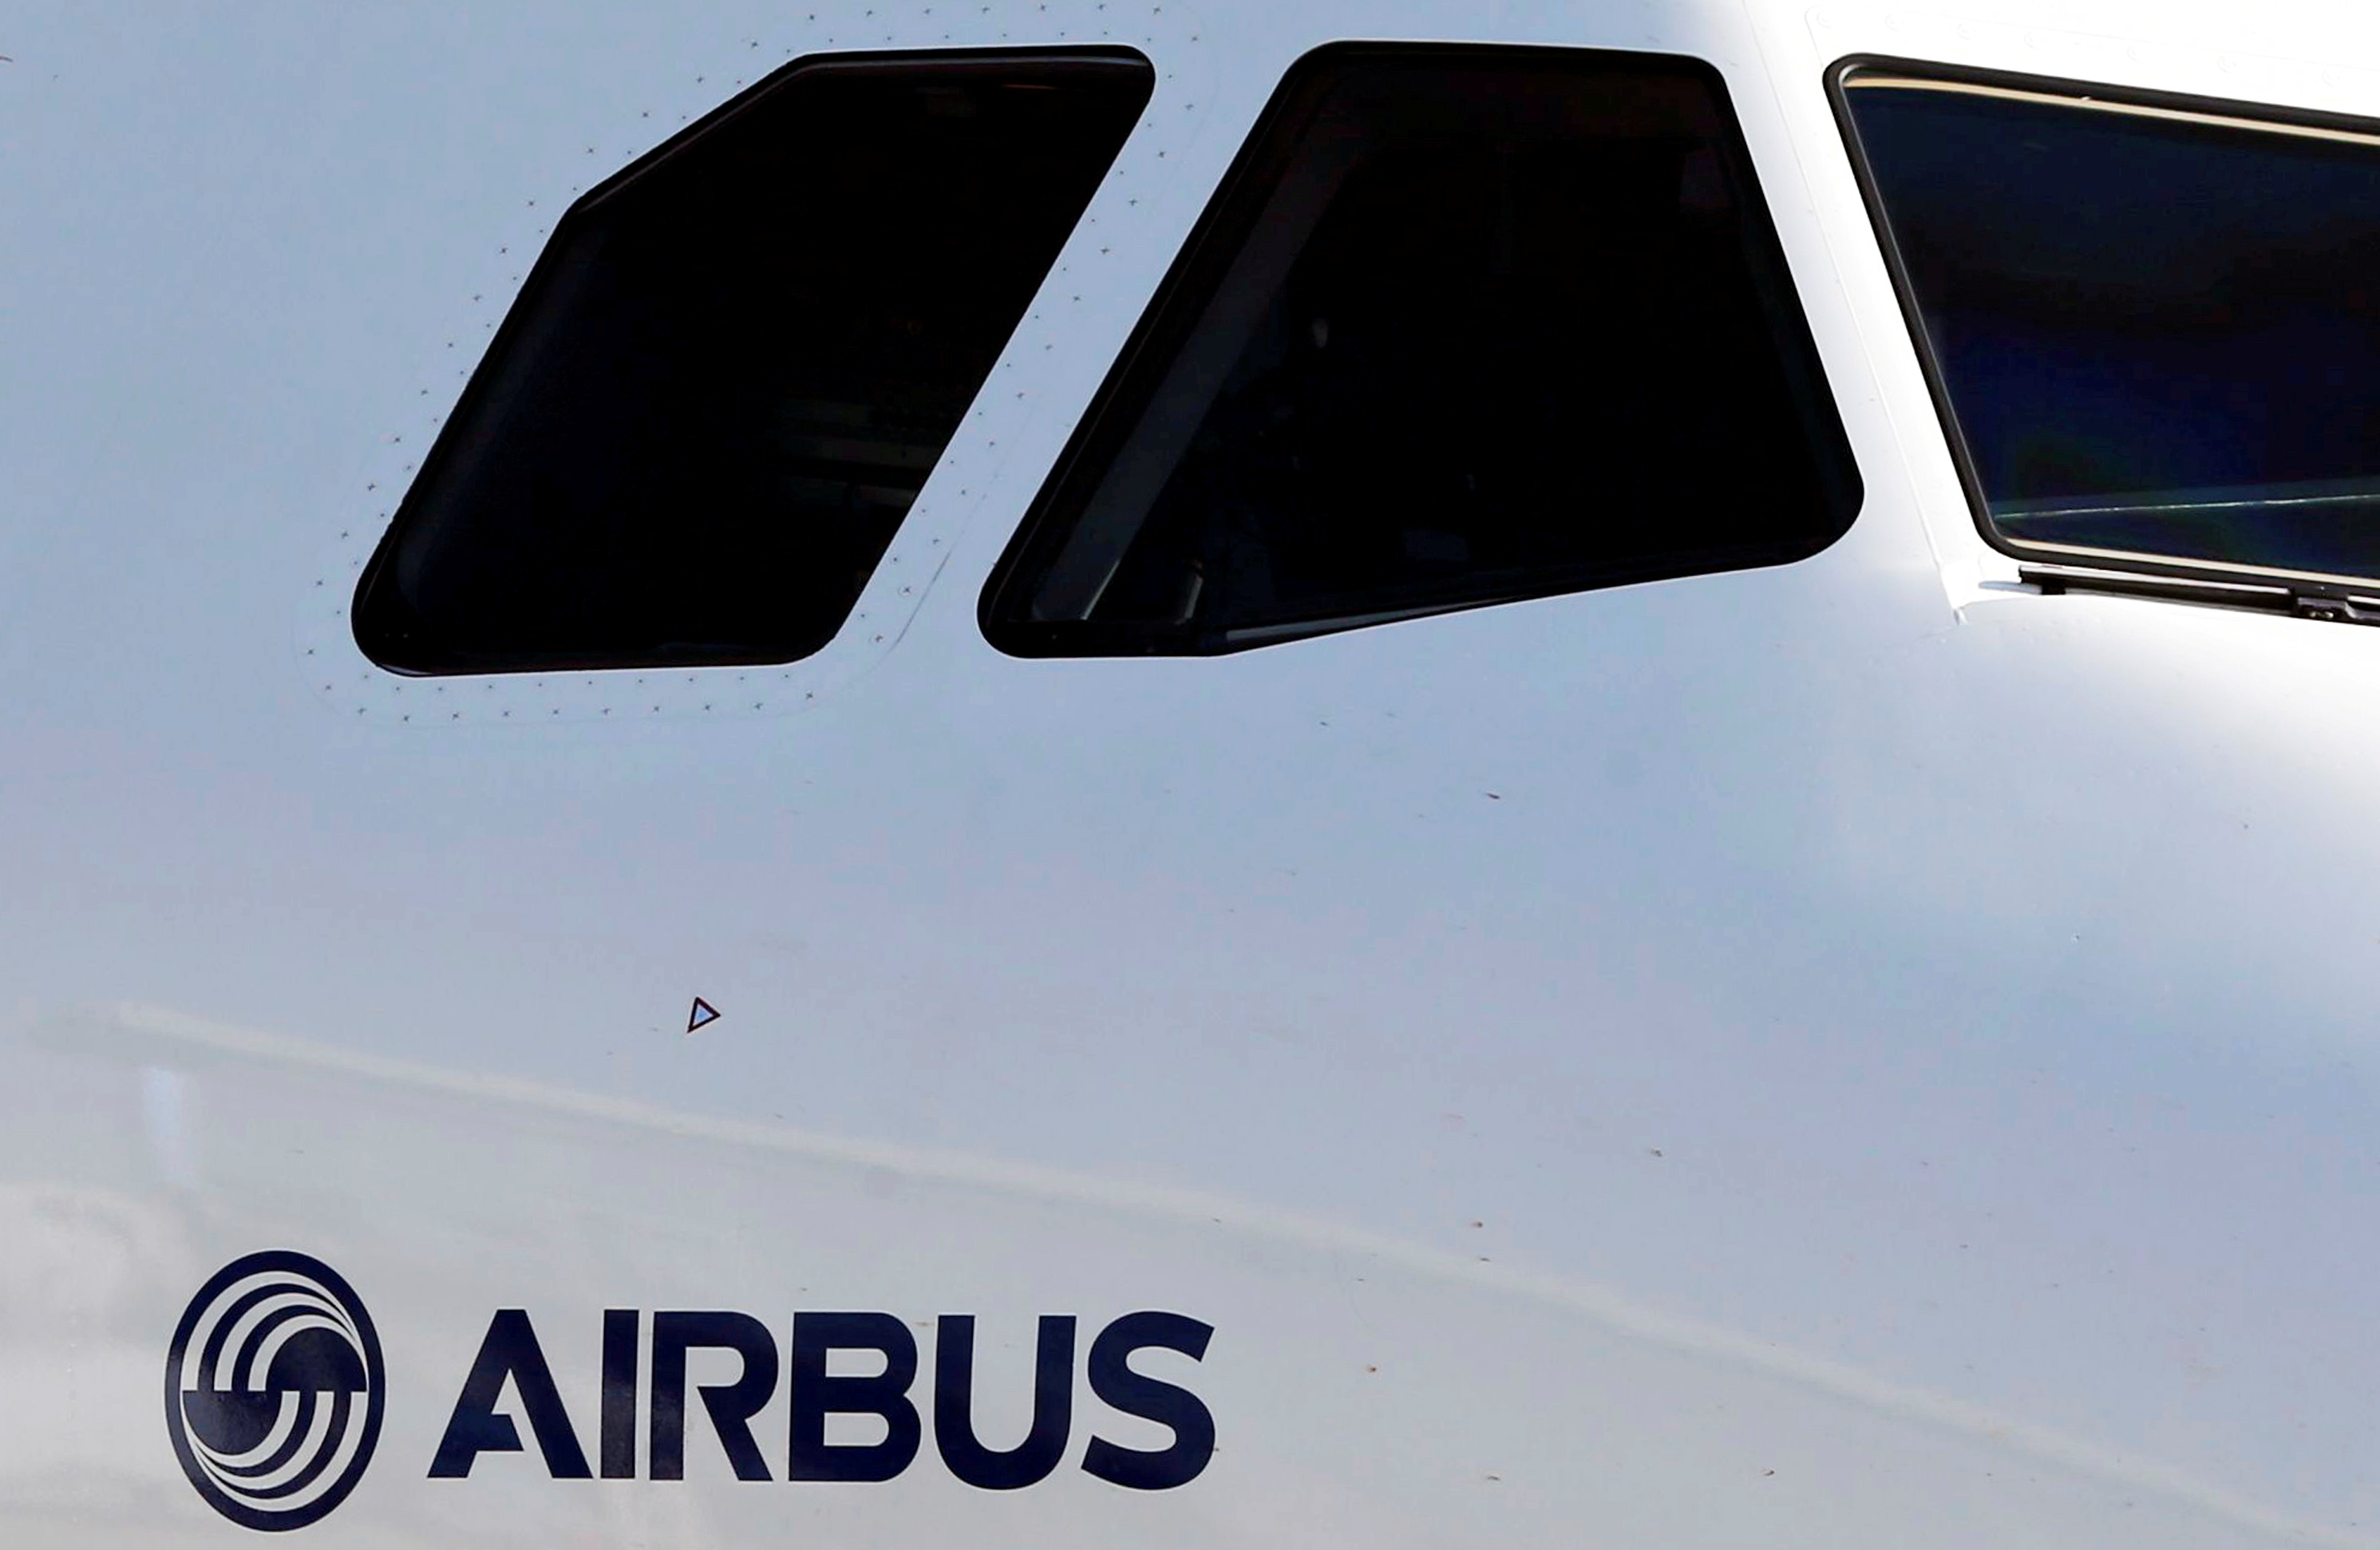 An Airbus A320neo aircraft is pictured during a news conference to announce a partnership between Airbus and Bombardier on the C Series aircraft programme, in Colomiers near Toulouse, France, October 17, 2017.   REUTERS/Regis Duvignau/File Photo